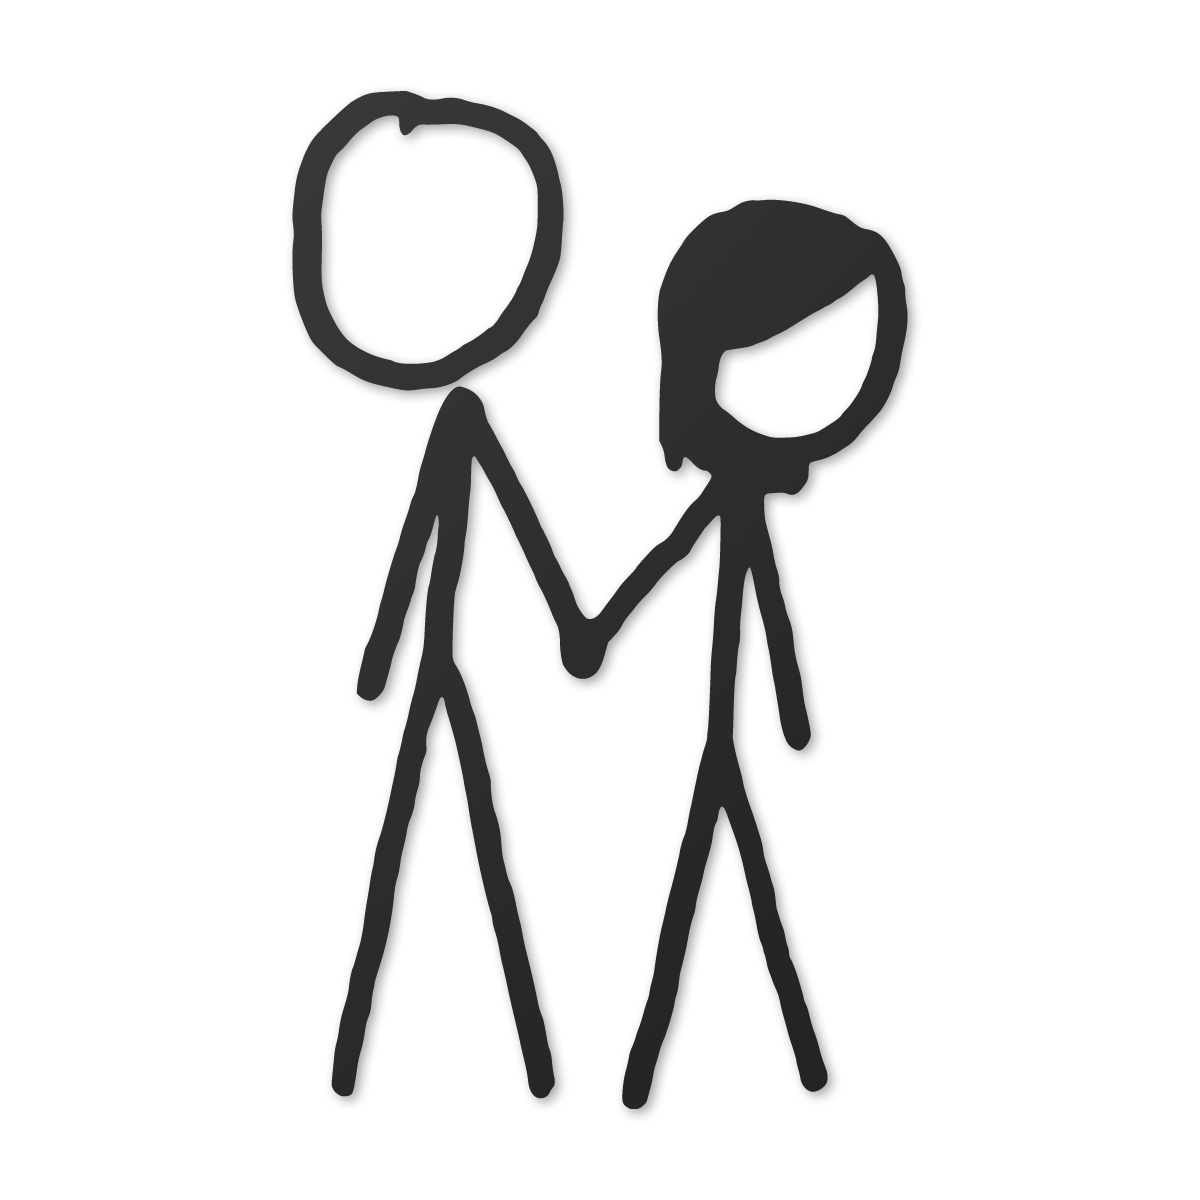 Stick figure drawing png. Free figures download clip